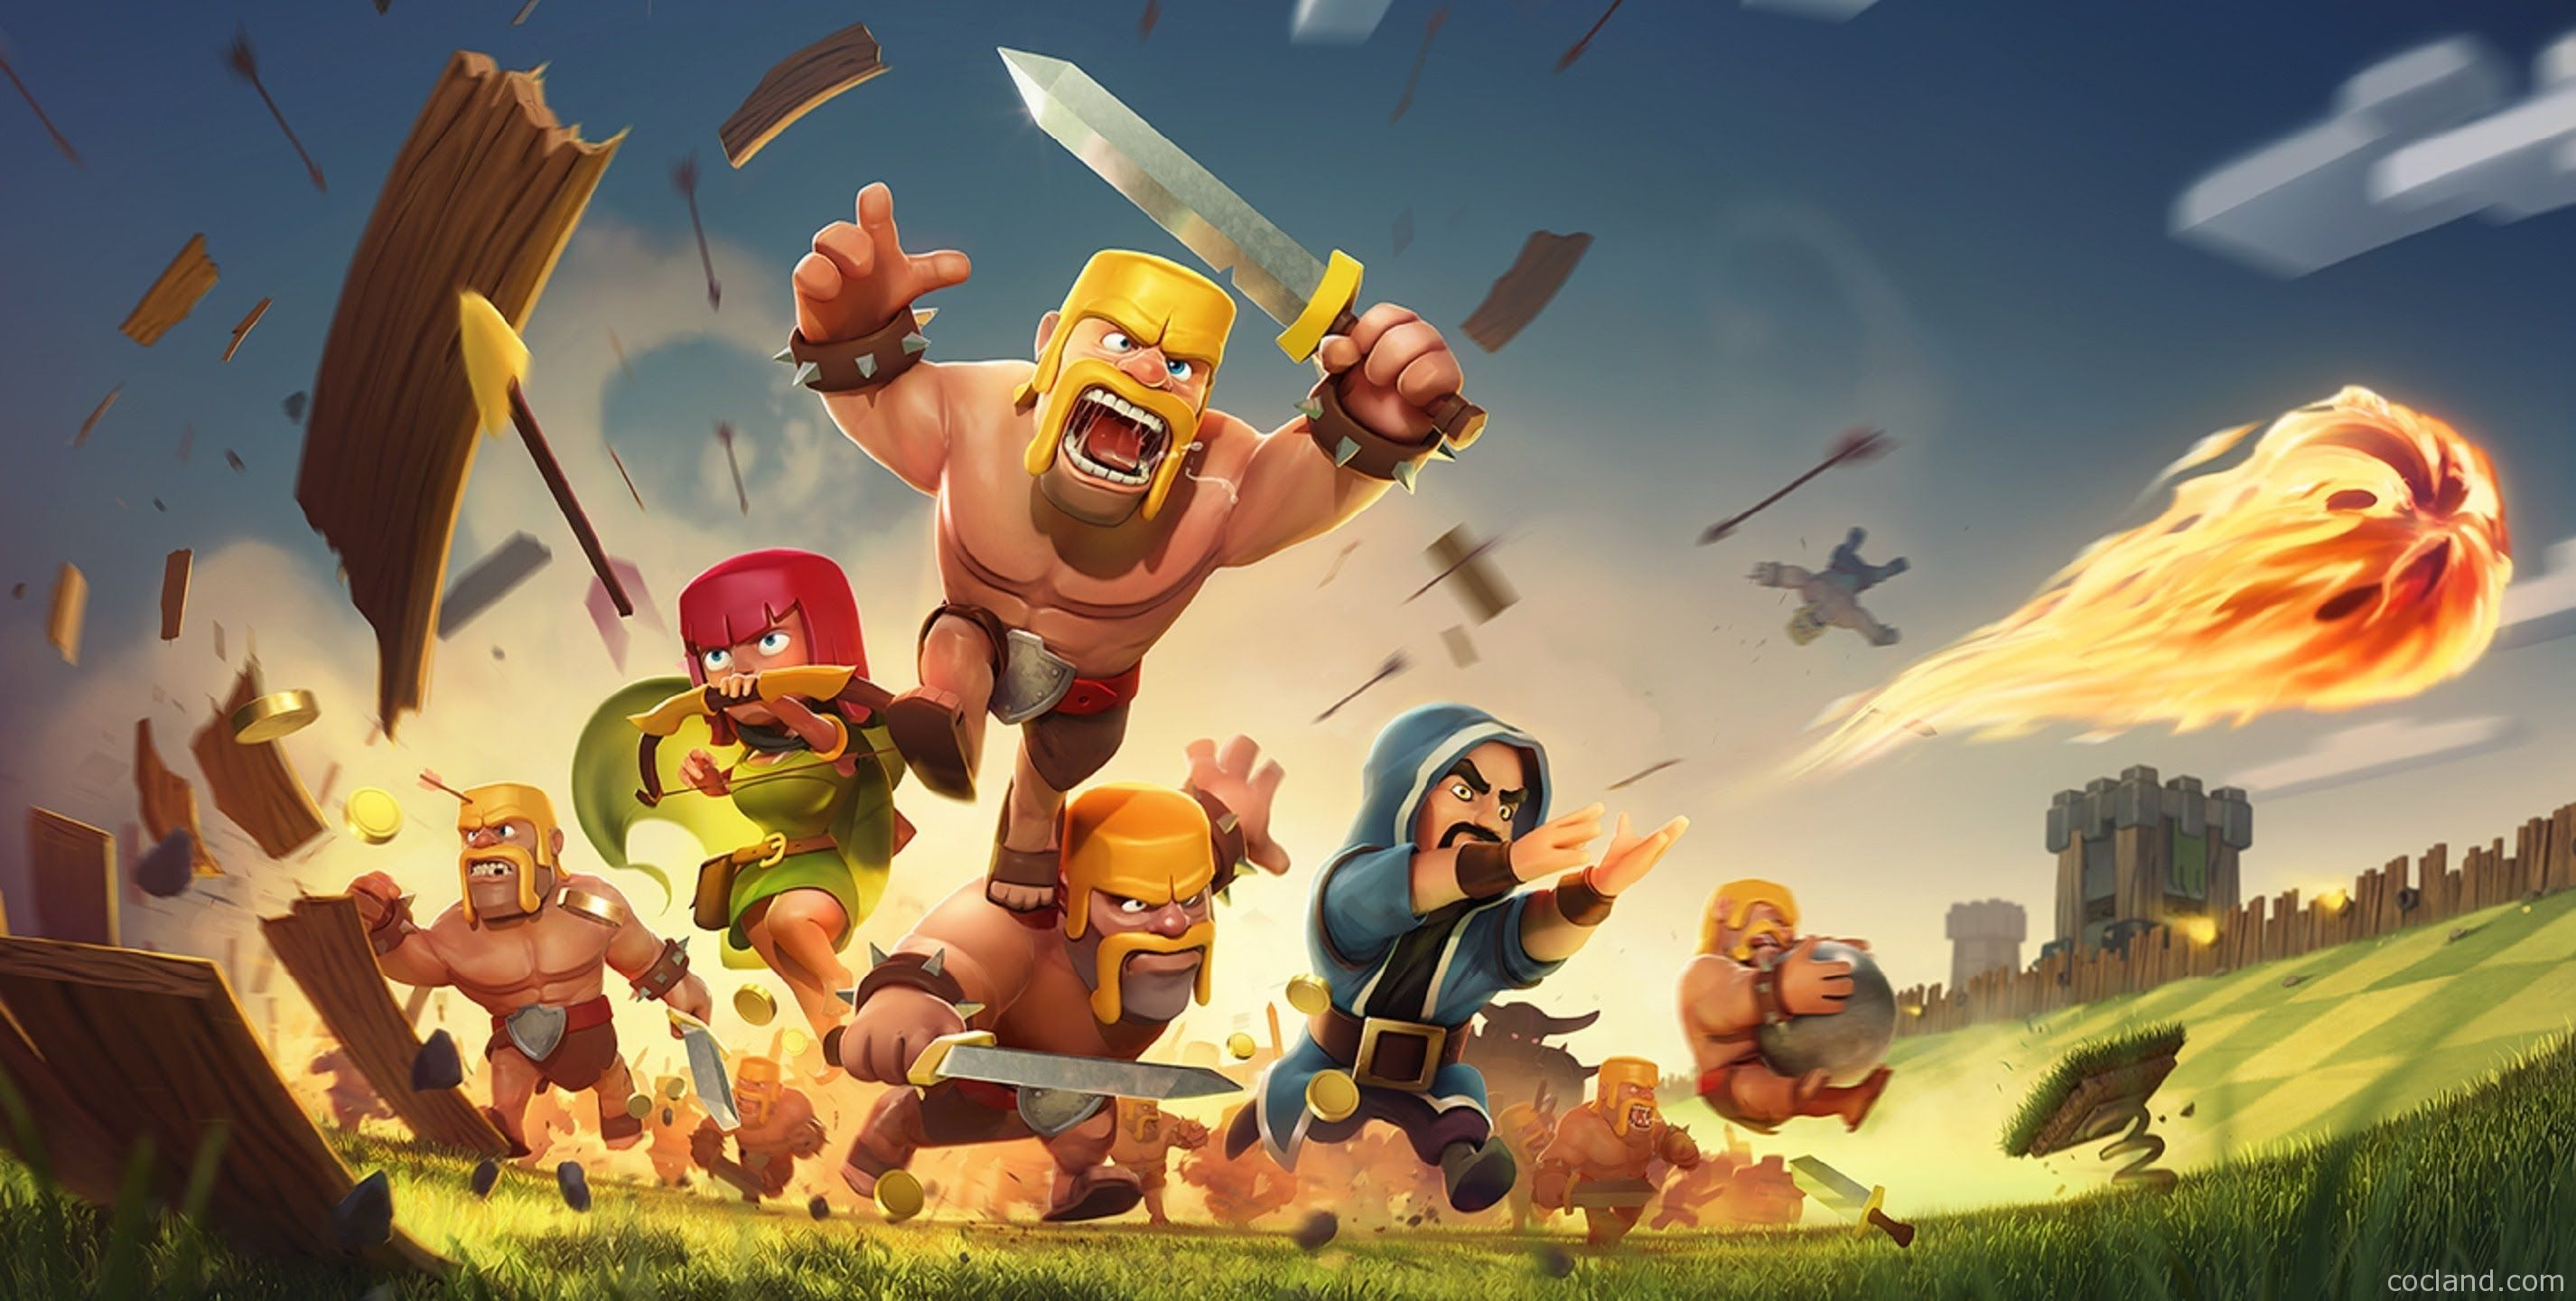 clash of clans troops wallpapers - wallpaper cave